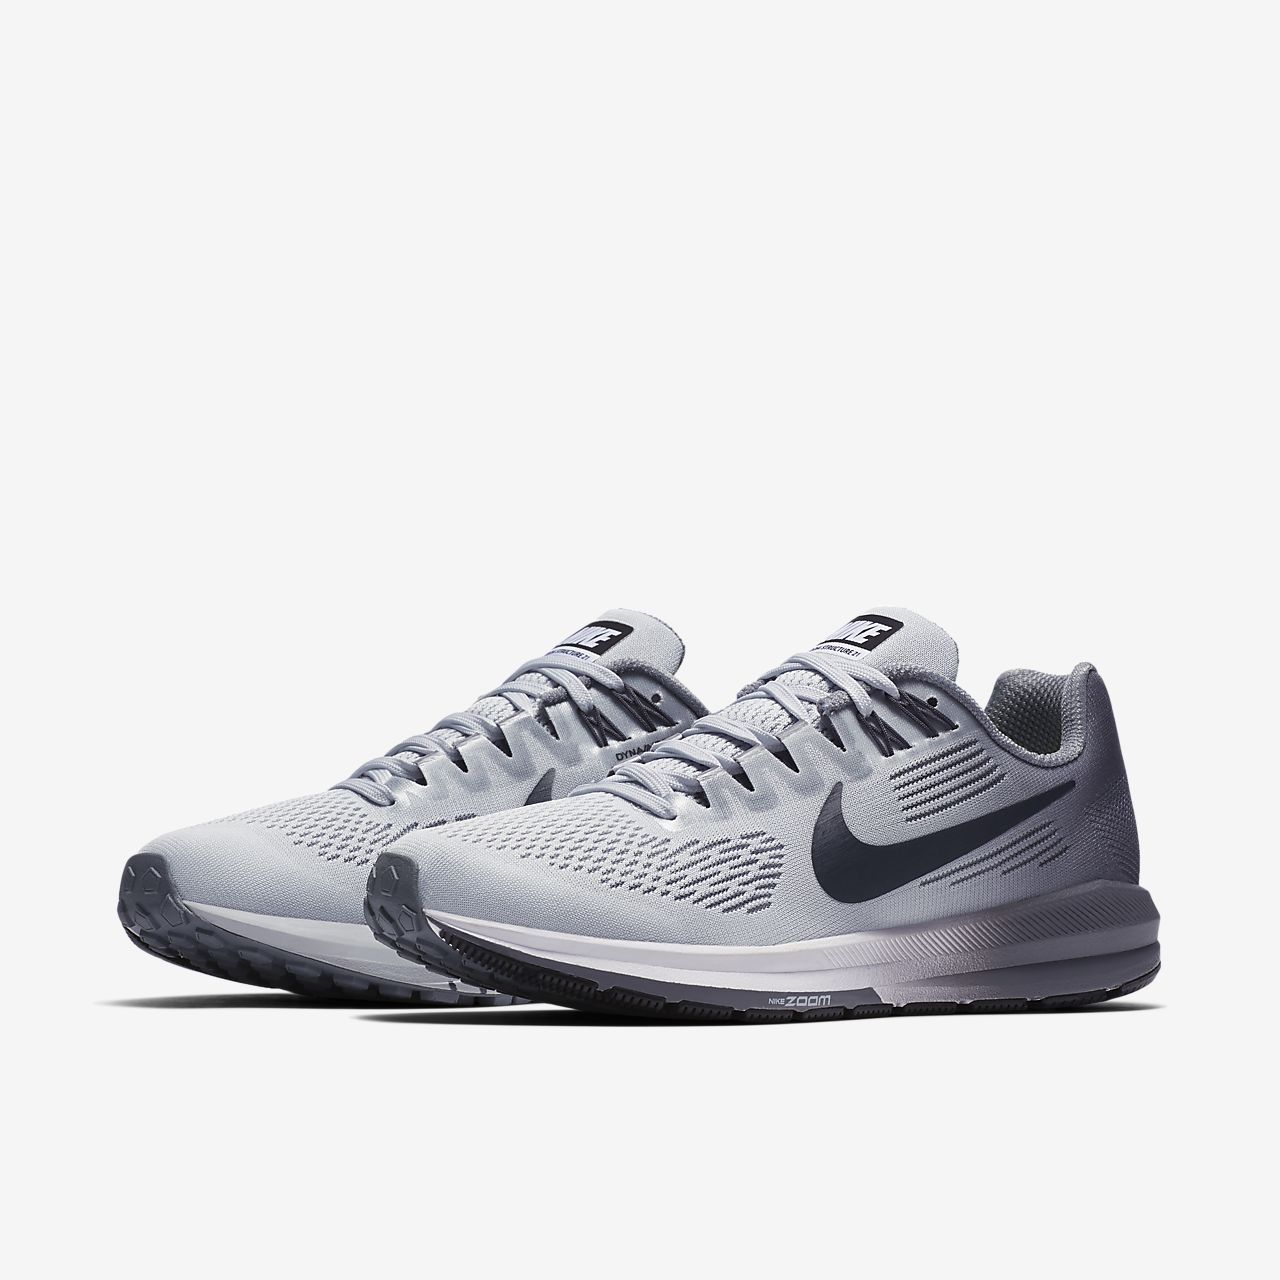 ... BlackWhite Anthracite. nike fresh  430d8 36c51 Nike Air Zoom Structure  21 Womens Running Shoe reliable quality ... a7ccf39f08